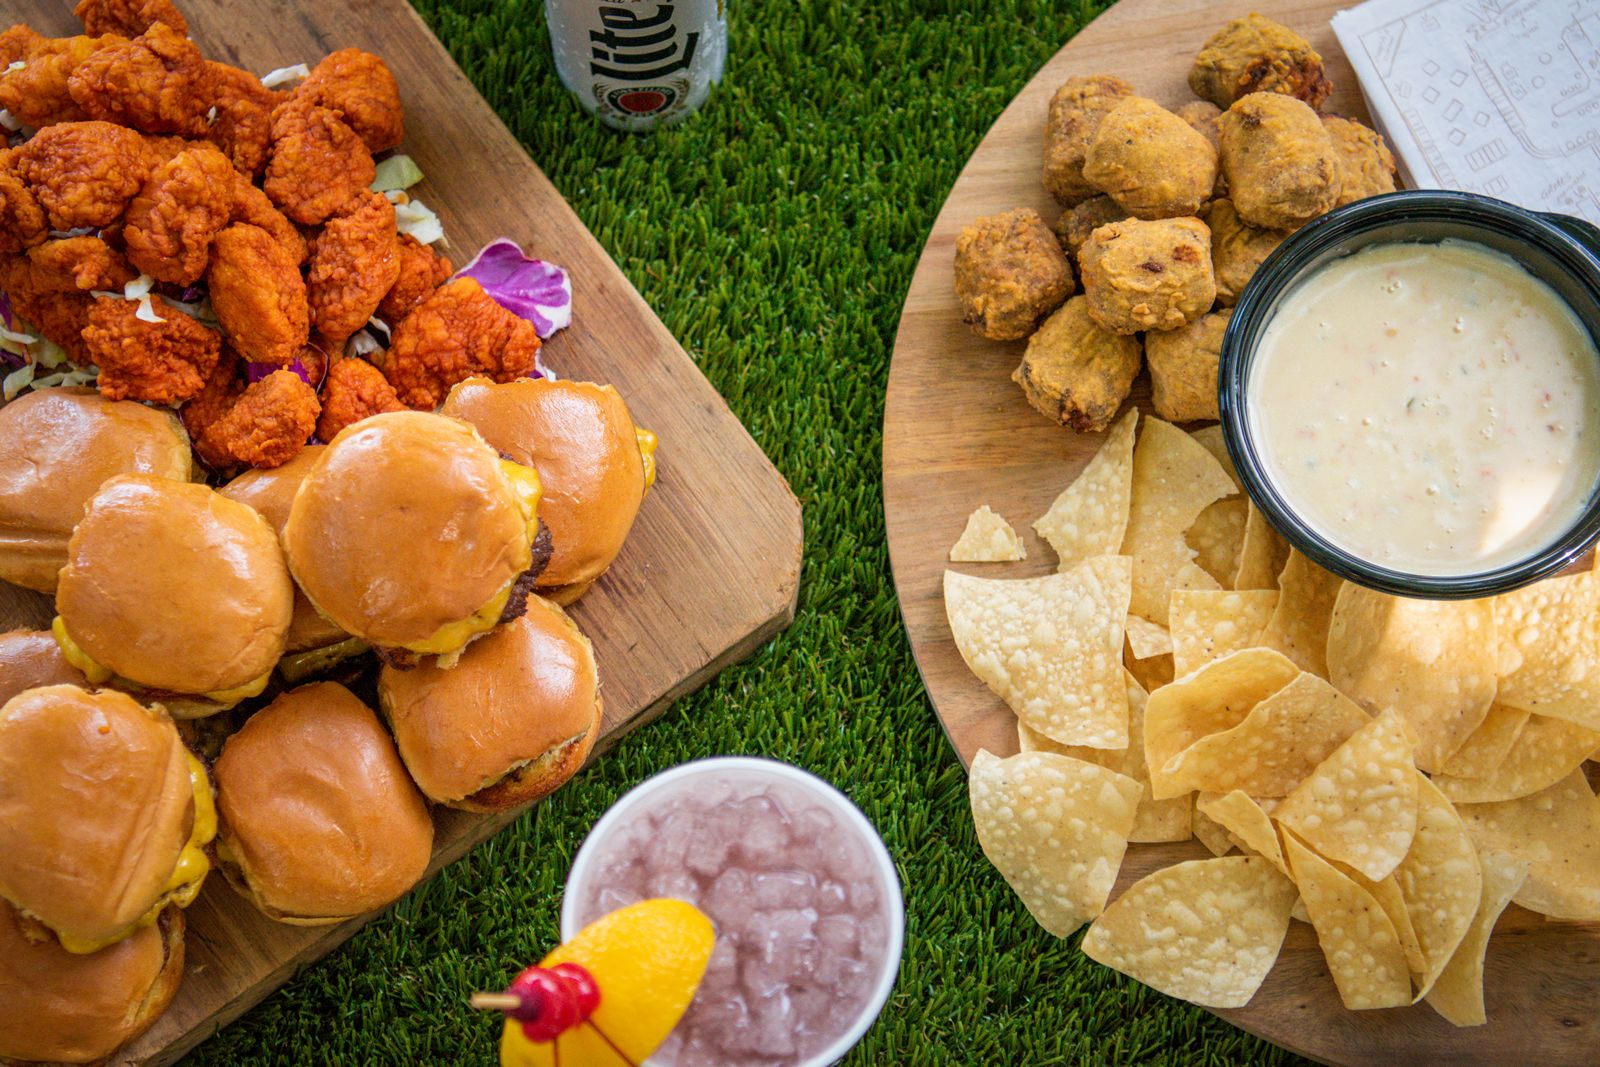 Enjoy the Taste of Louisiana this Football Season with Walk-On's Tailgate To-Geaux Bundle